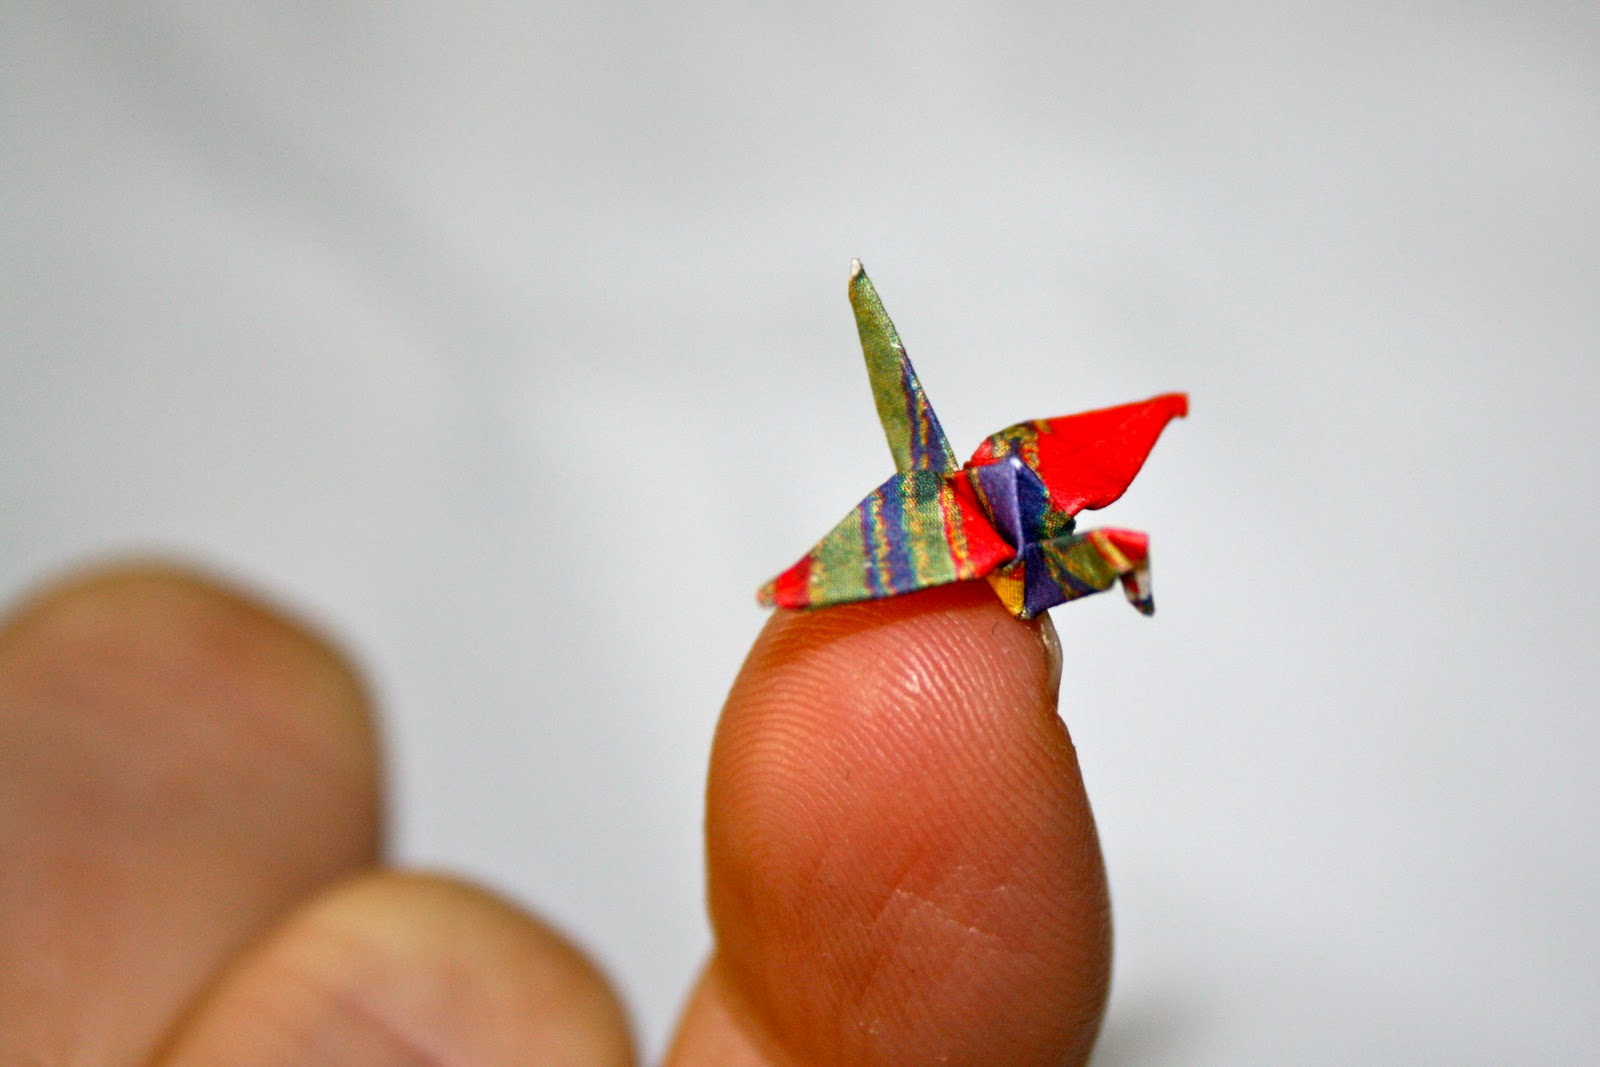 Making Adorably Small Origami Paper Cranes - Ripley's Believe It ... | 1067x1600